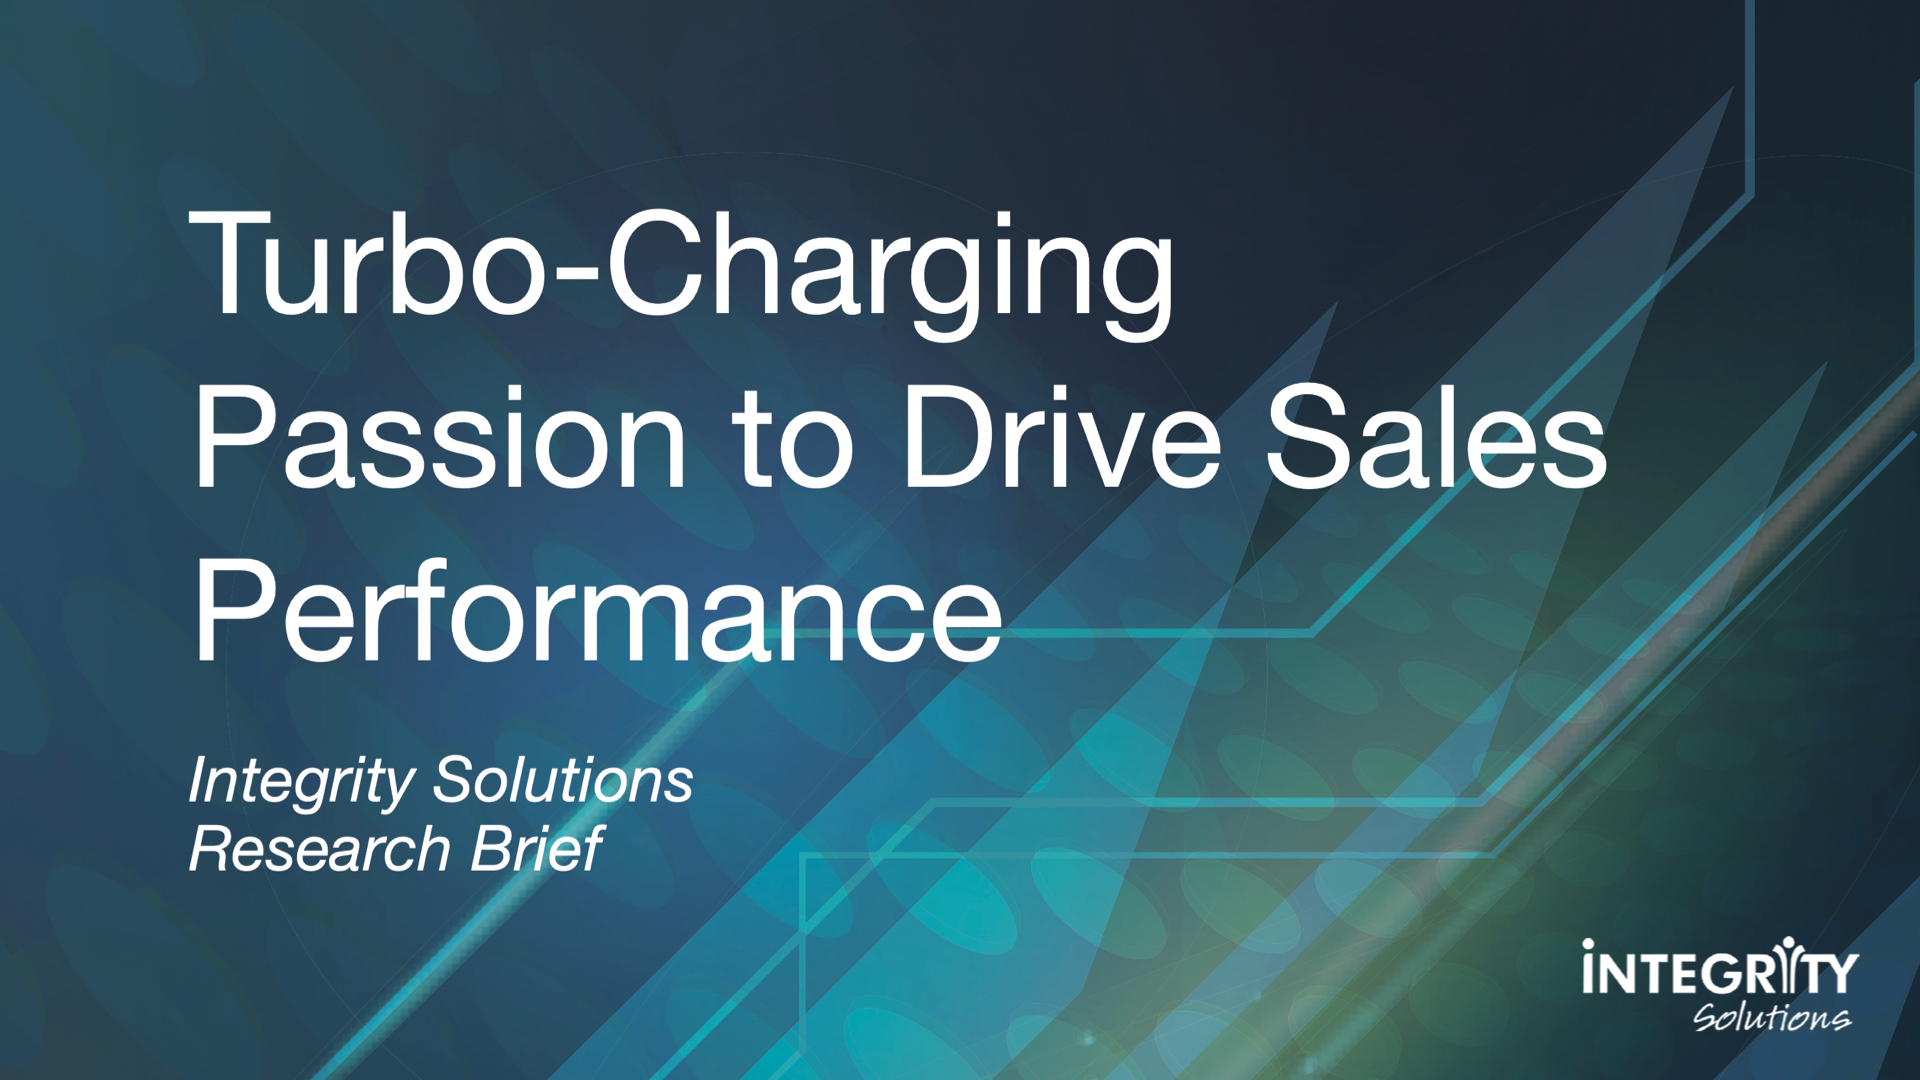 Turbo-Charging Passion to Drive Sales Performance